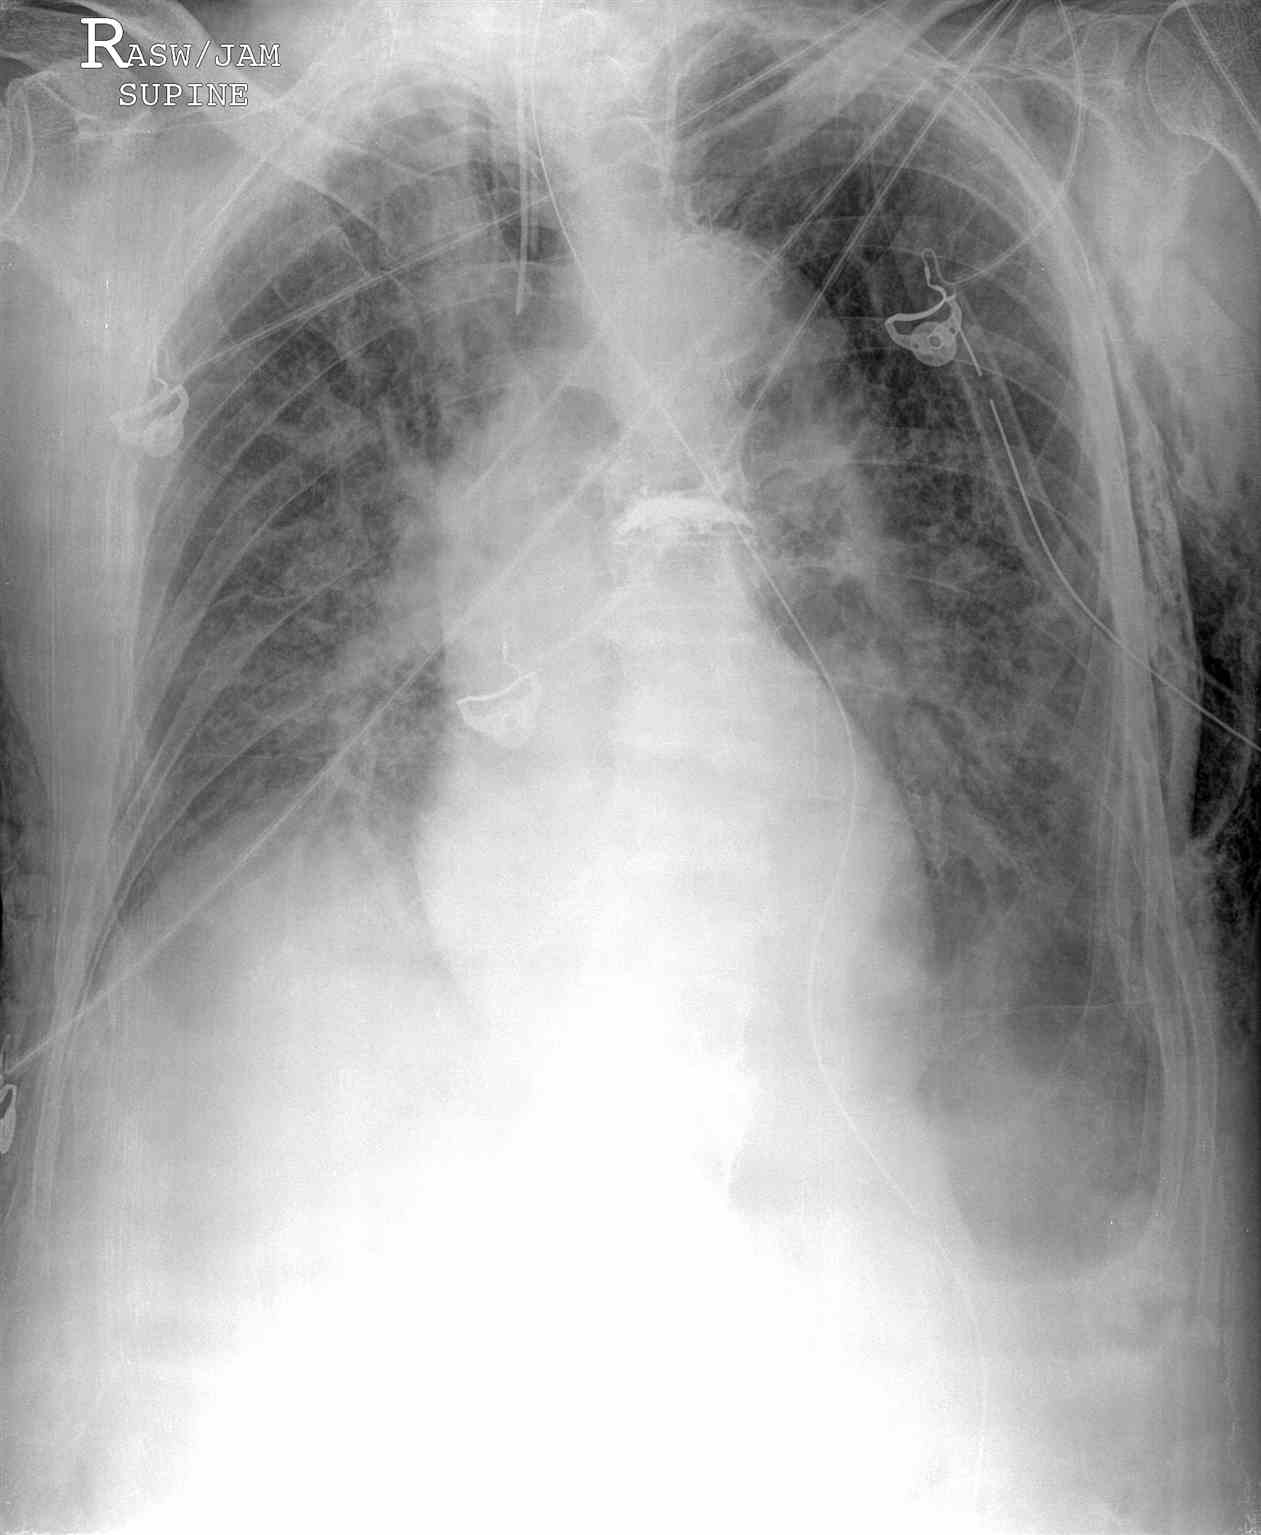 Portable Chest Radiograph Left Deep Sulcus Pneumothorax